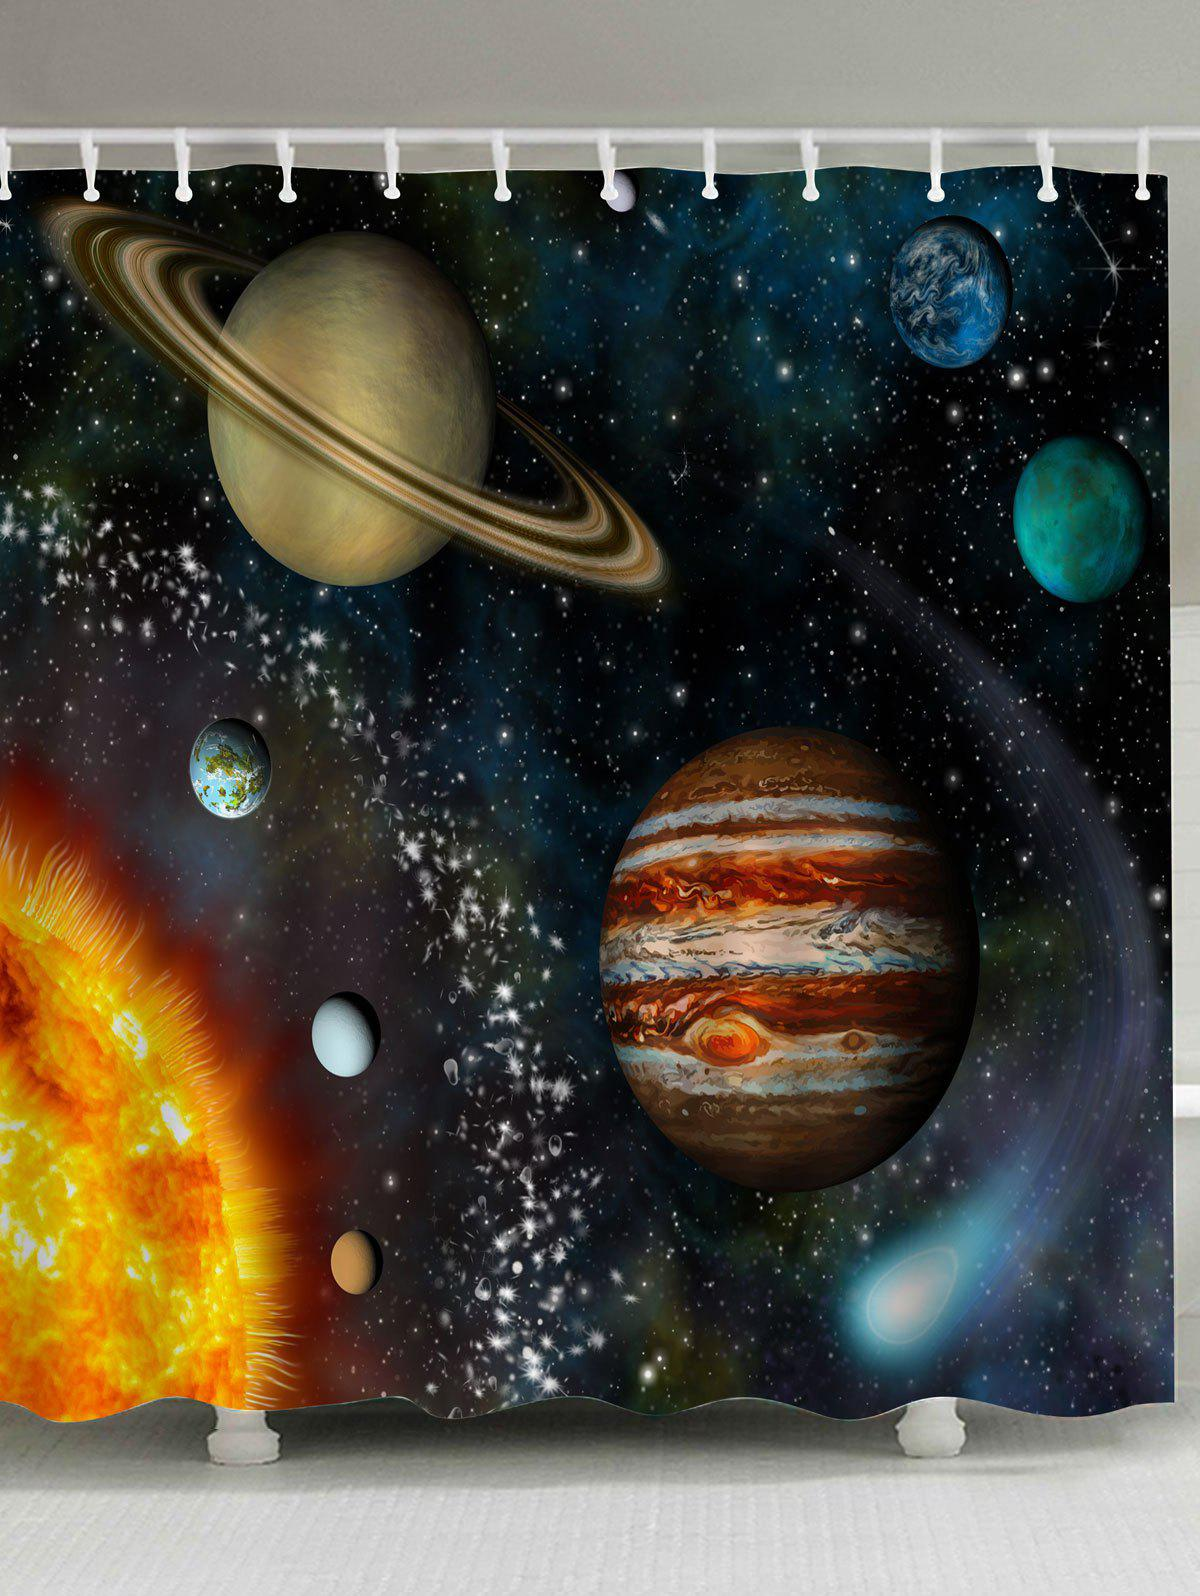 Galaxy Planet Anti-bacteria Shower Curtain beach palm tree waterproof anti bacteria shower curtain